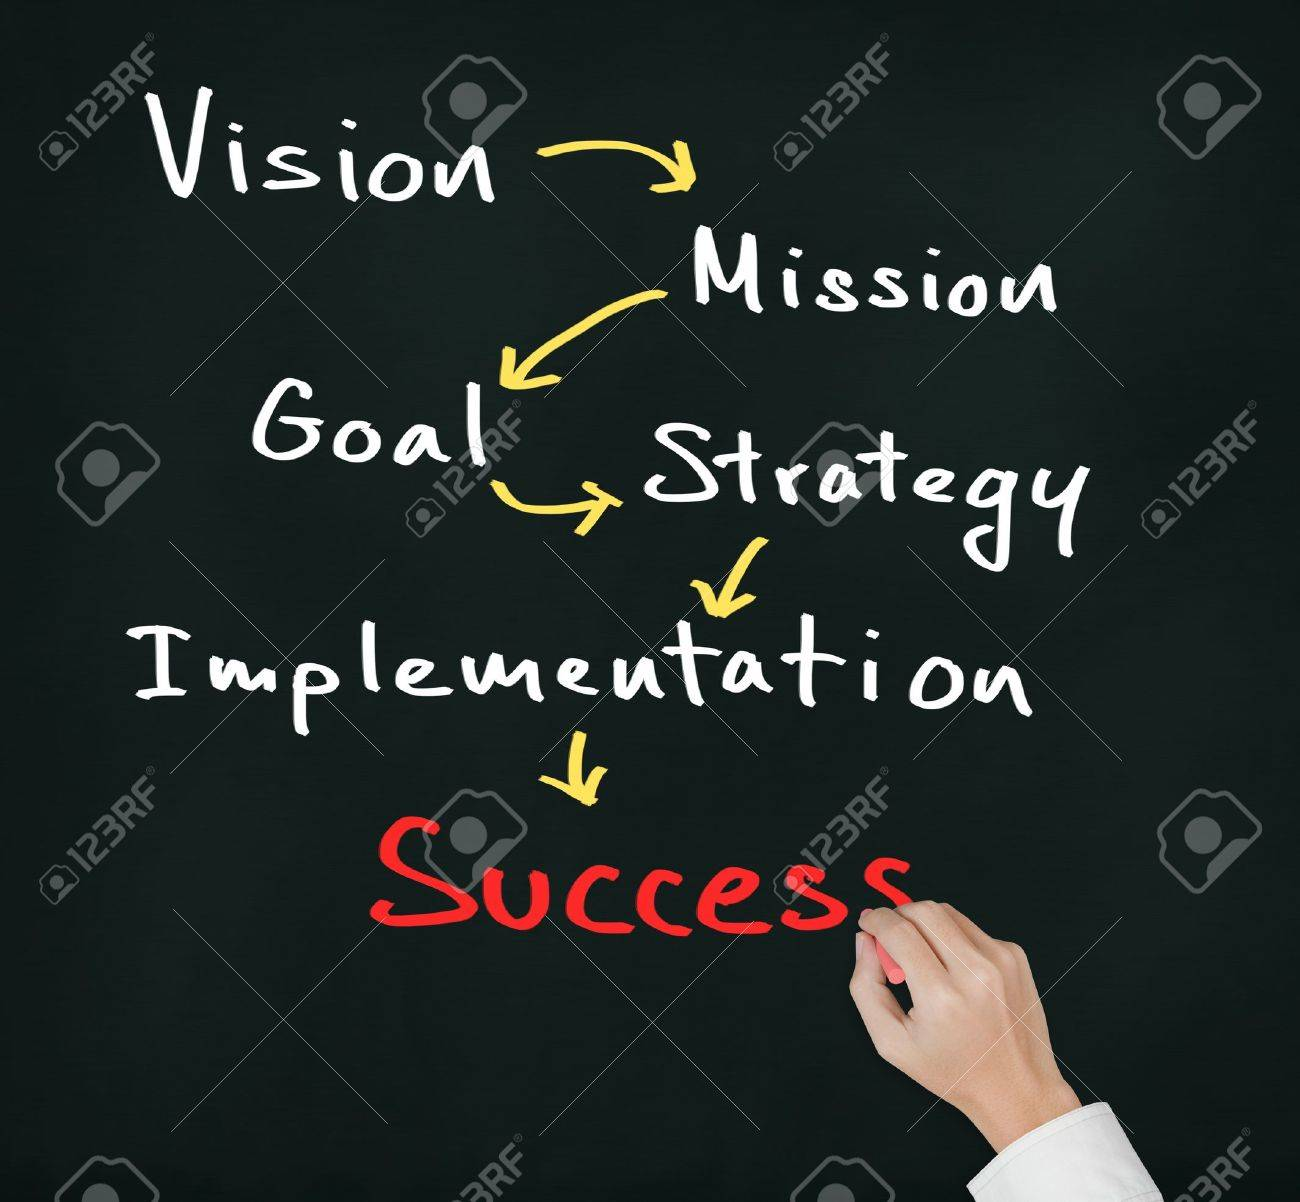 business hand writing business concept   vision - mission - goal - strategy - implementation   lead to success Stock Photo - 14723355